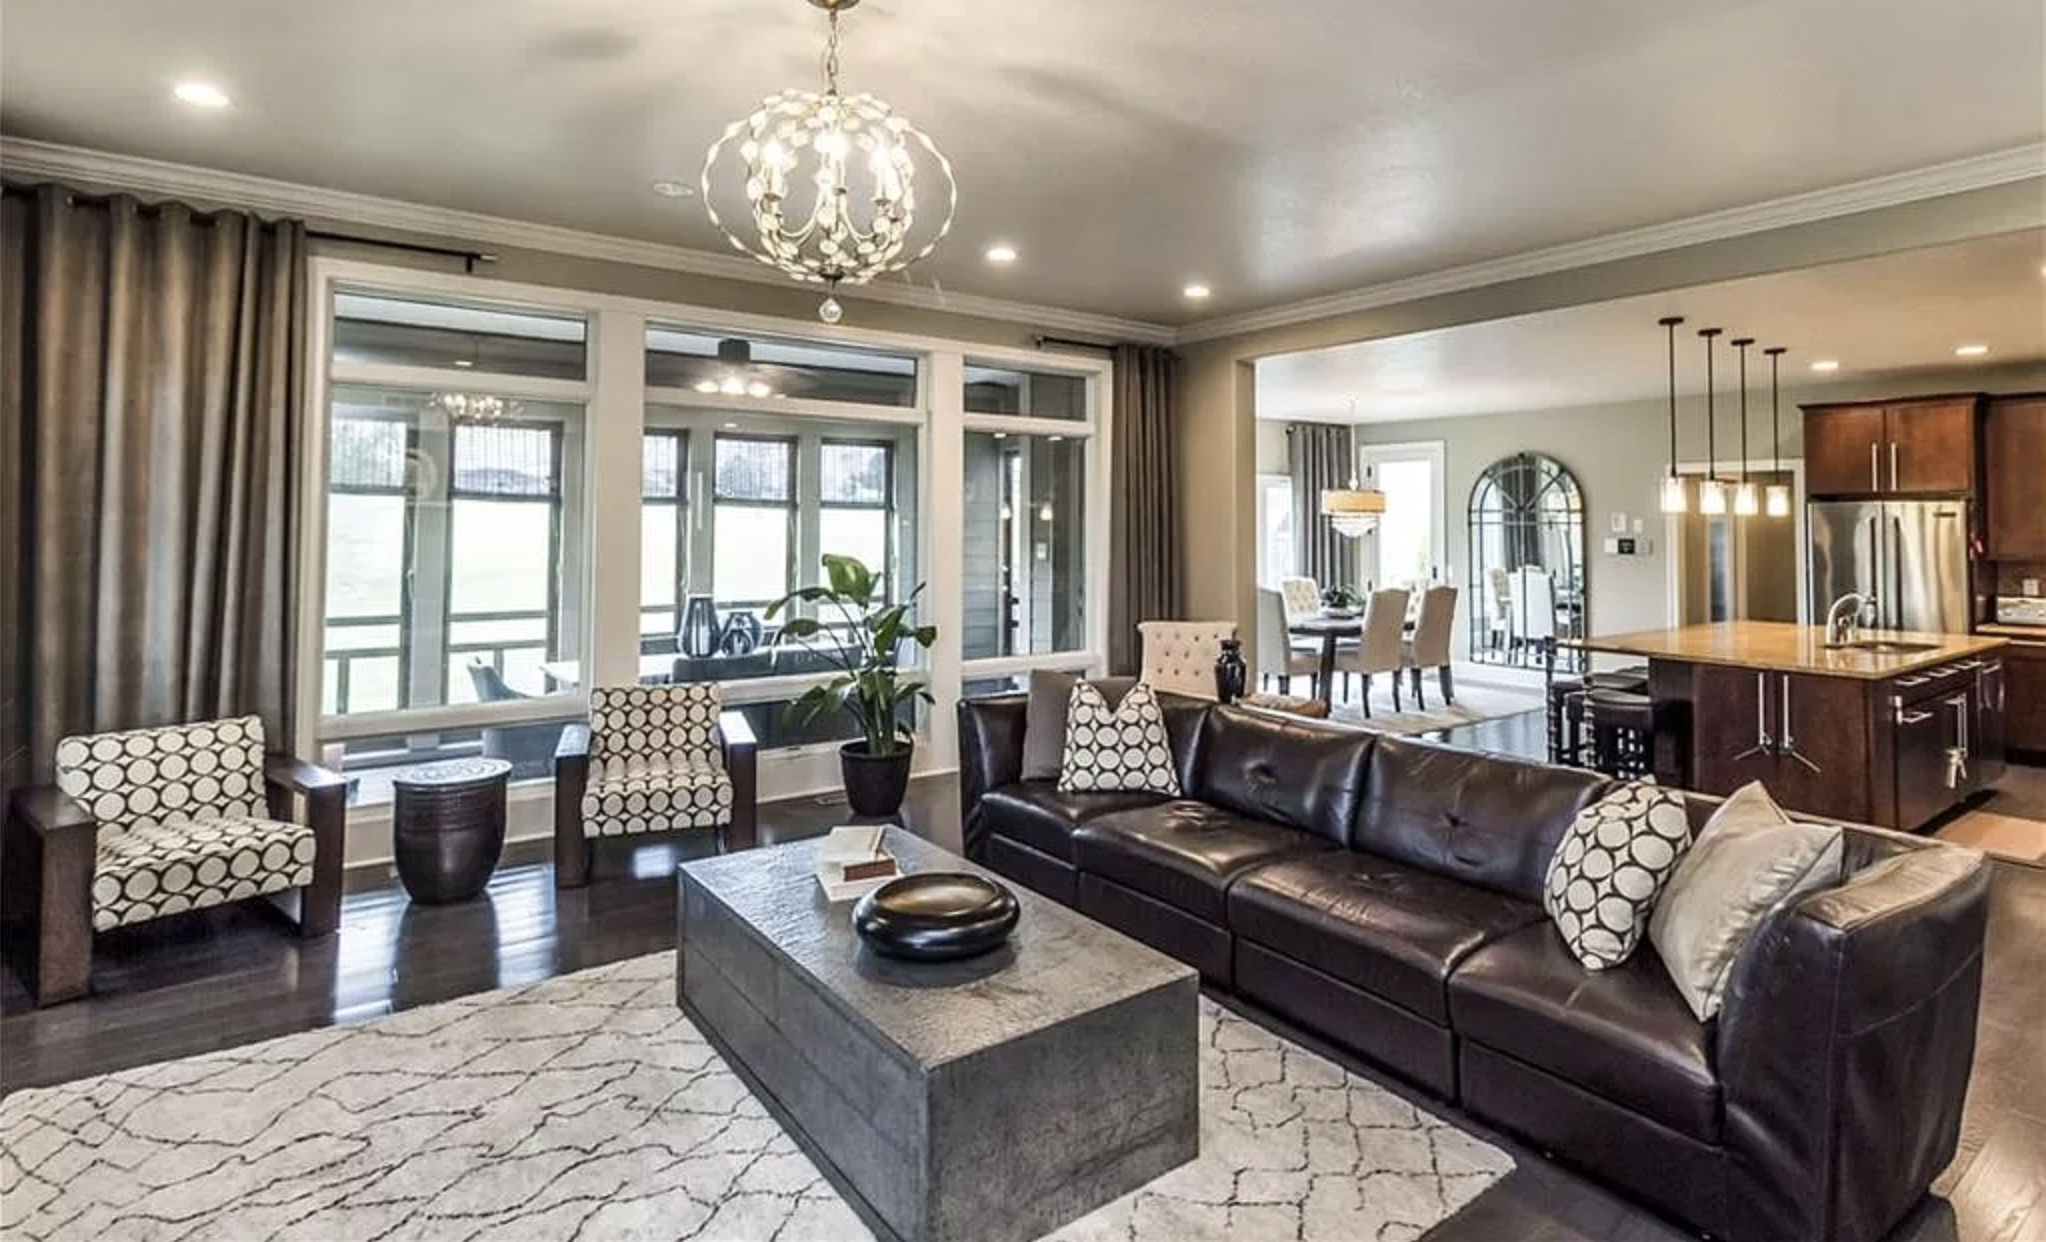 The living room of a Pleasant Hill home up for sale.